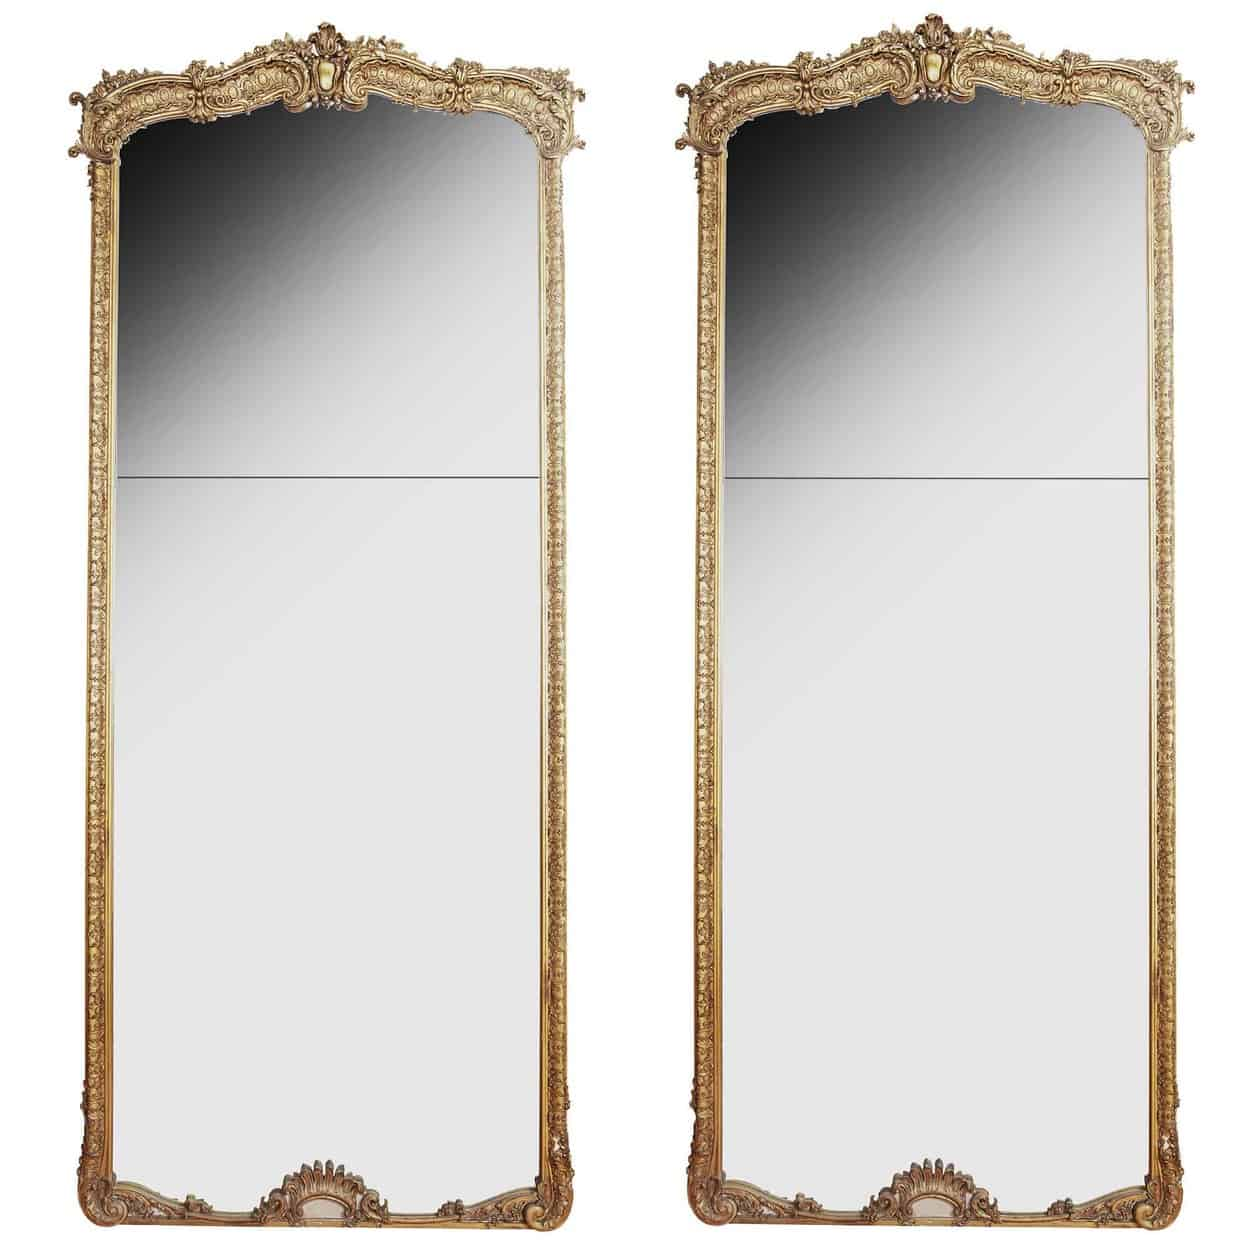 Pair Of Large 10ft Tall Full Length French Louis Xv Antique Gold Gilt Pier Mirrors Nicholas Wells Antiques Ltd Antique Dealers London Masterpiece Located In London